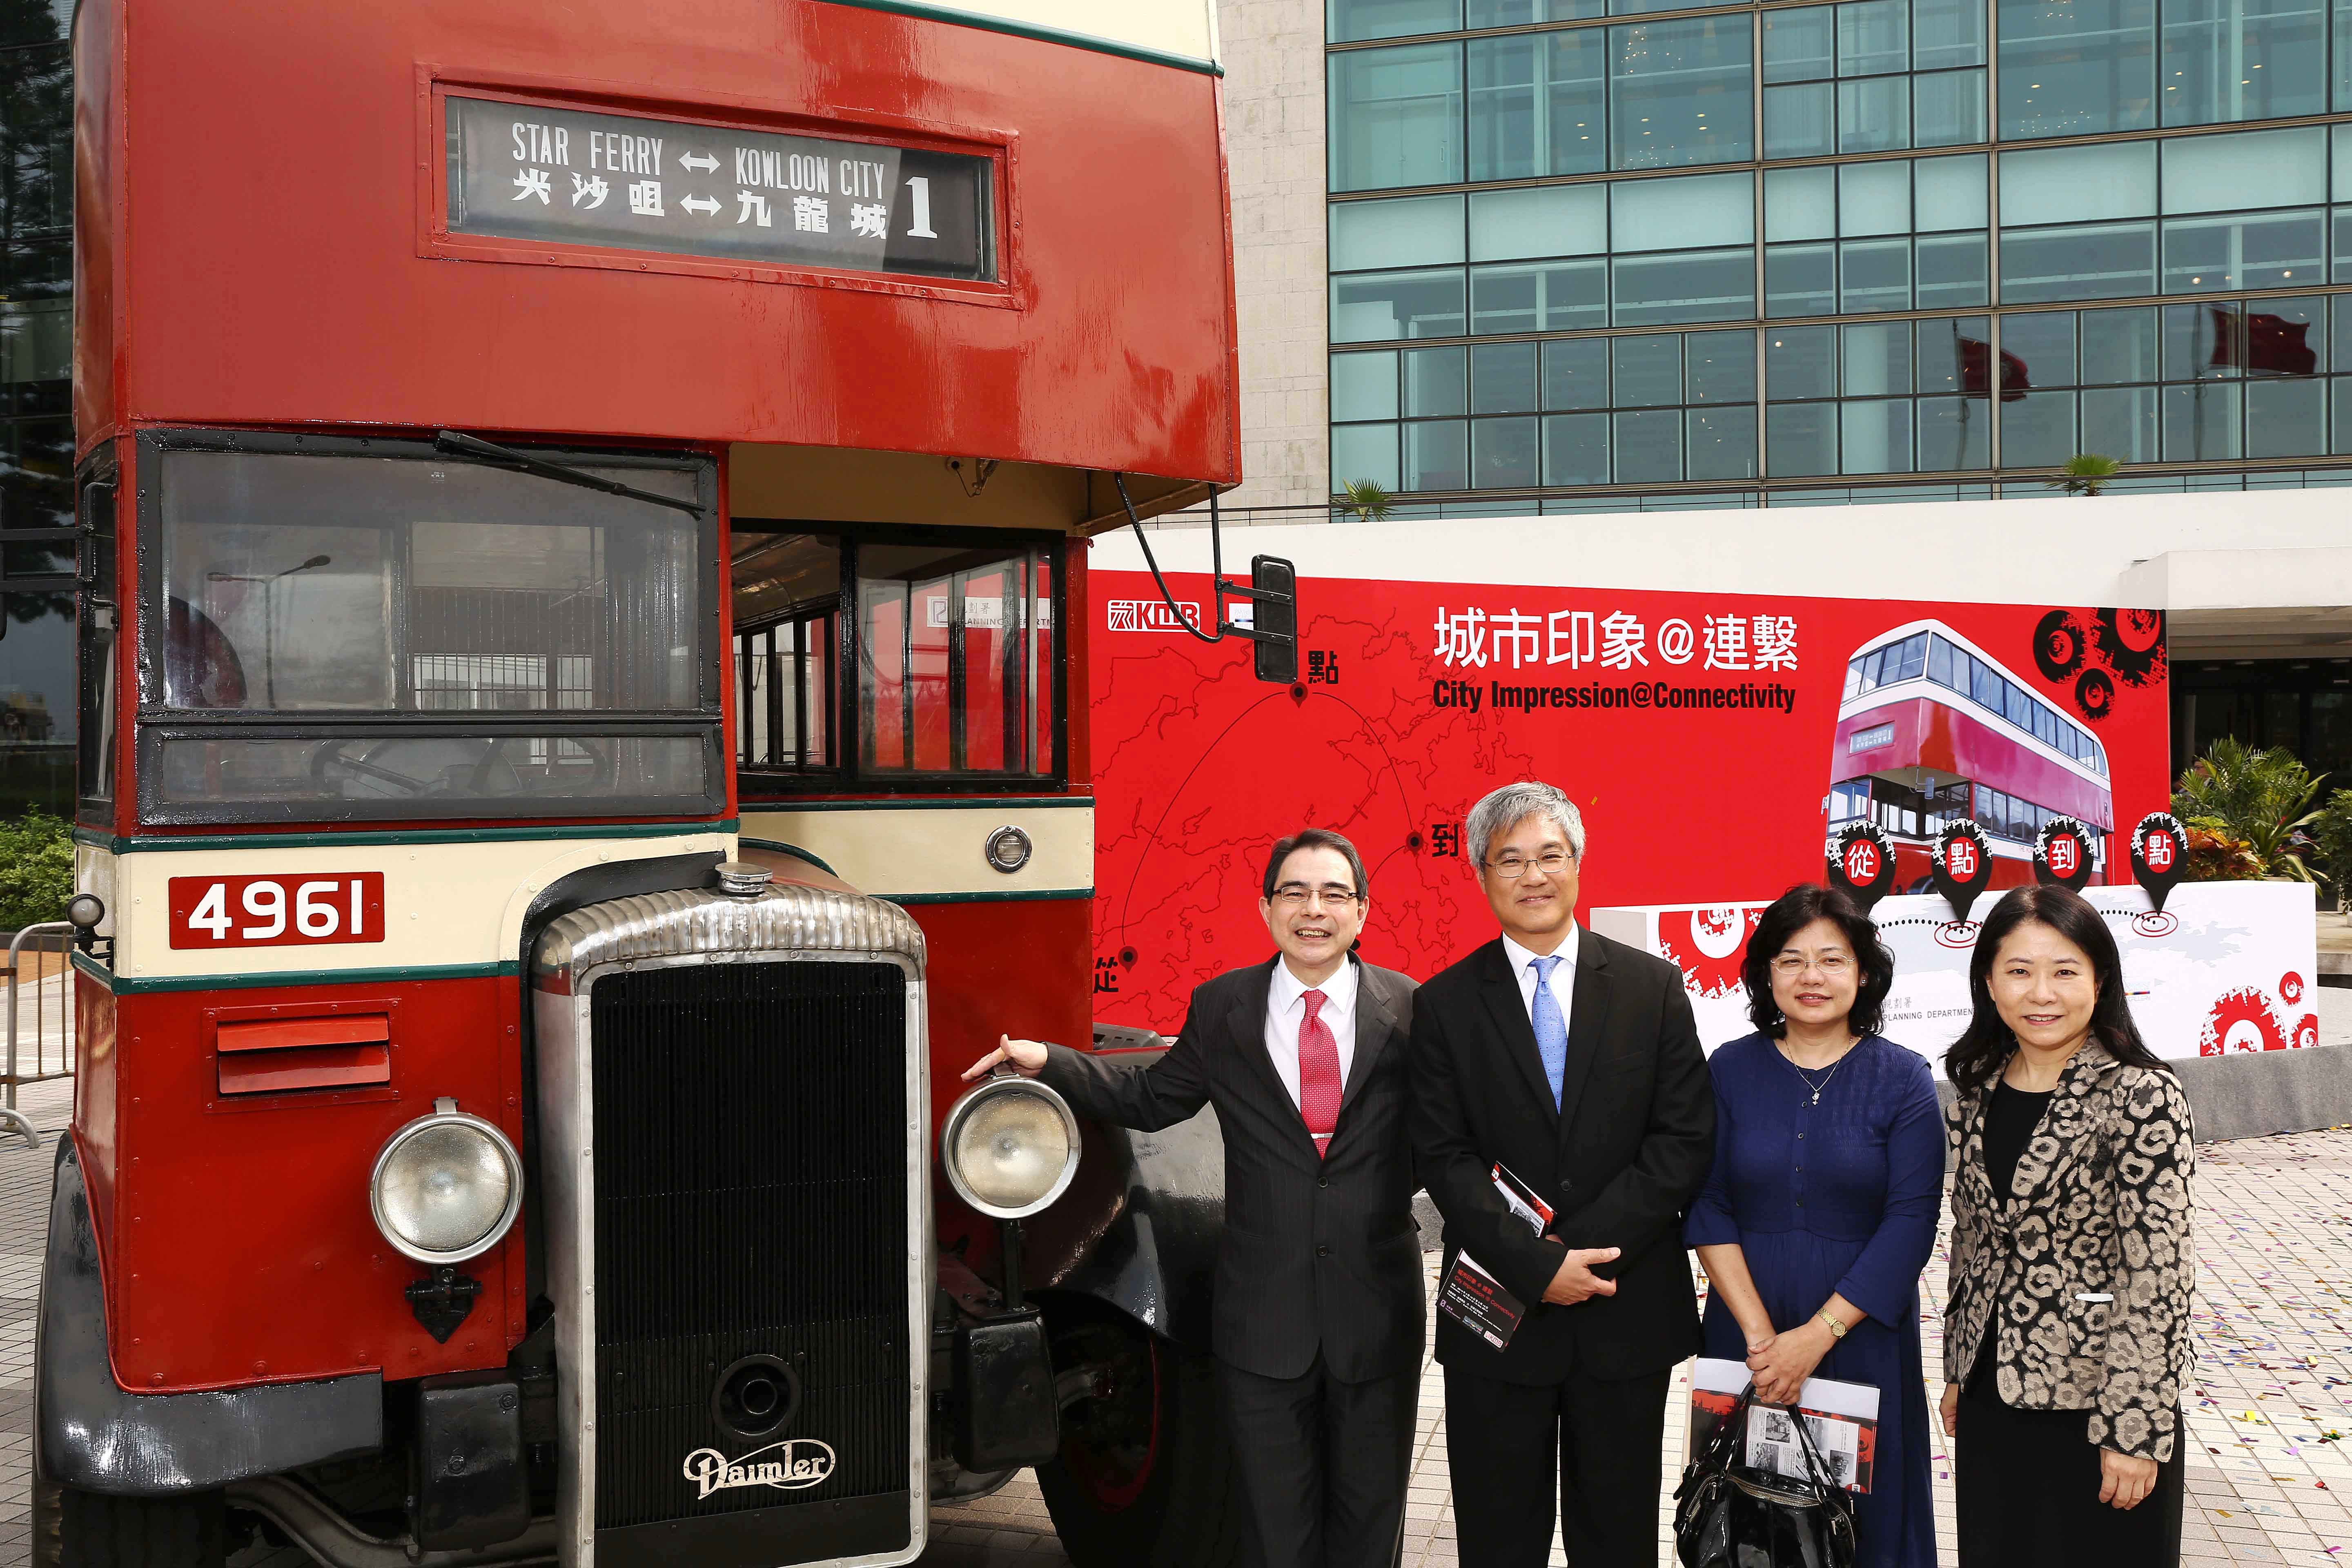 The vintage Daimler A bus is the highlight of the exhibition. Officiating guests (from left to right) KMB Managing Director Mr. Edmond Ho, Director of Planning Mr. KK Ling, Deputy Director of Planning Ms Phyllis Li and KMB Corporate Affairs Director Vivien Chan in front of the vintage bus.